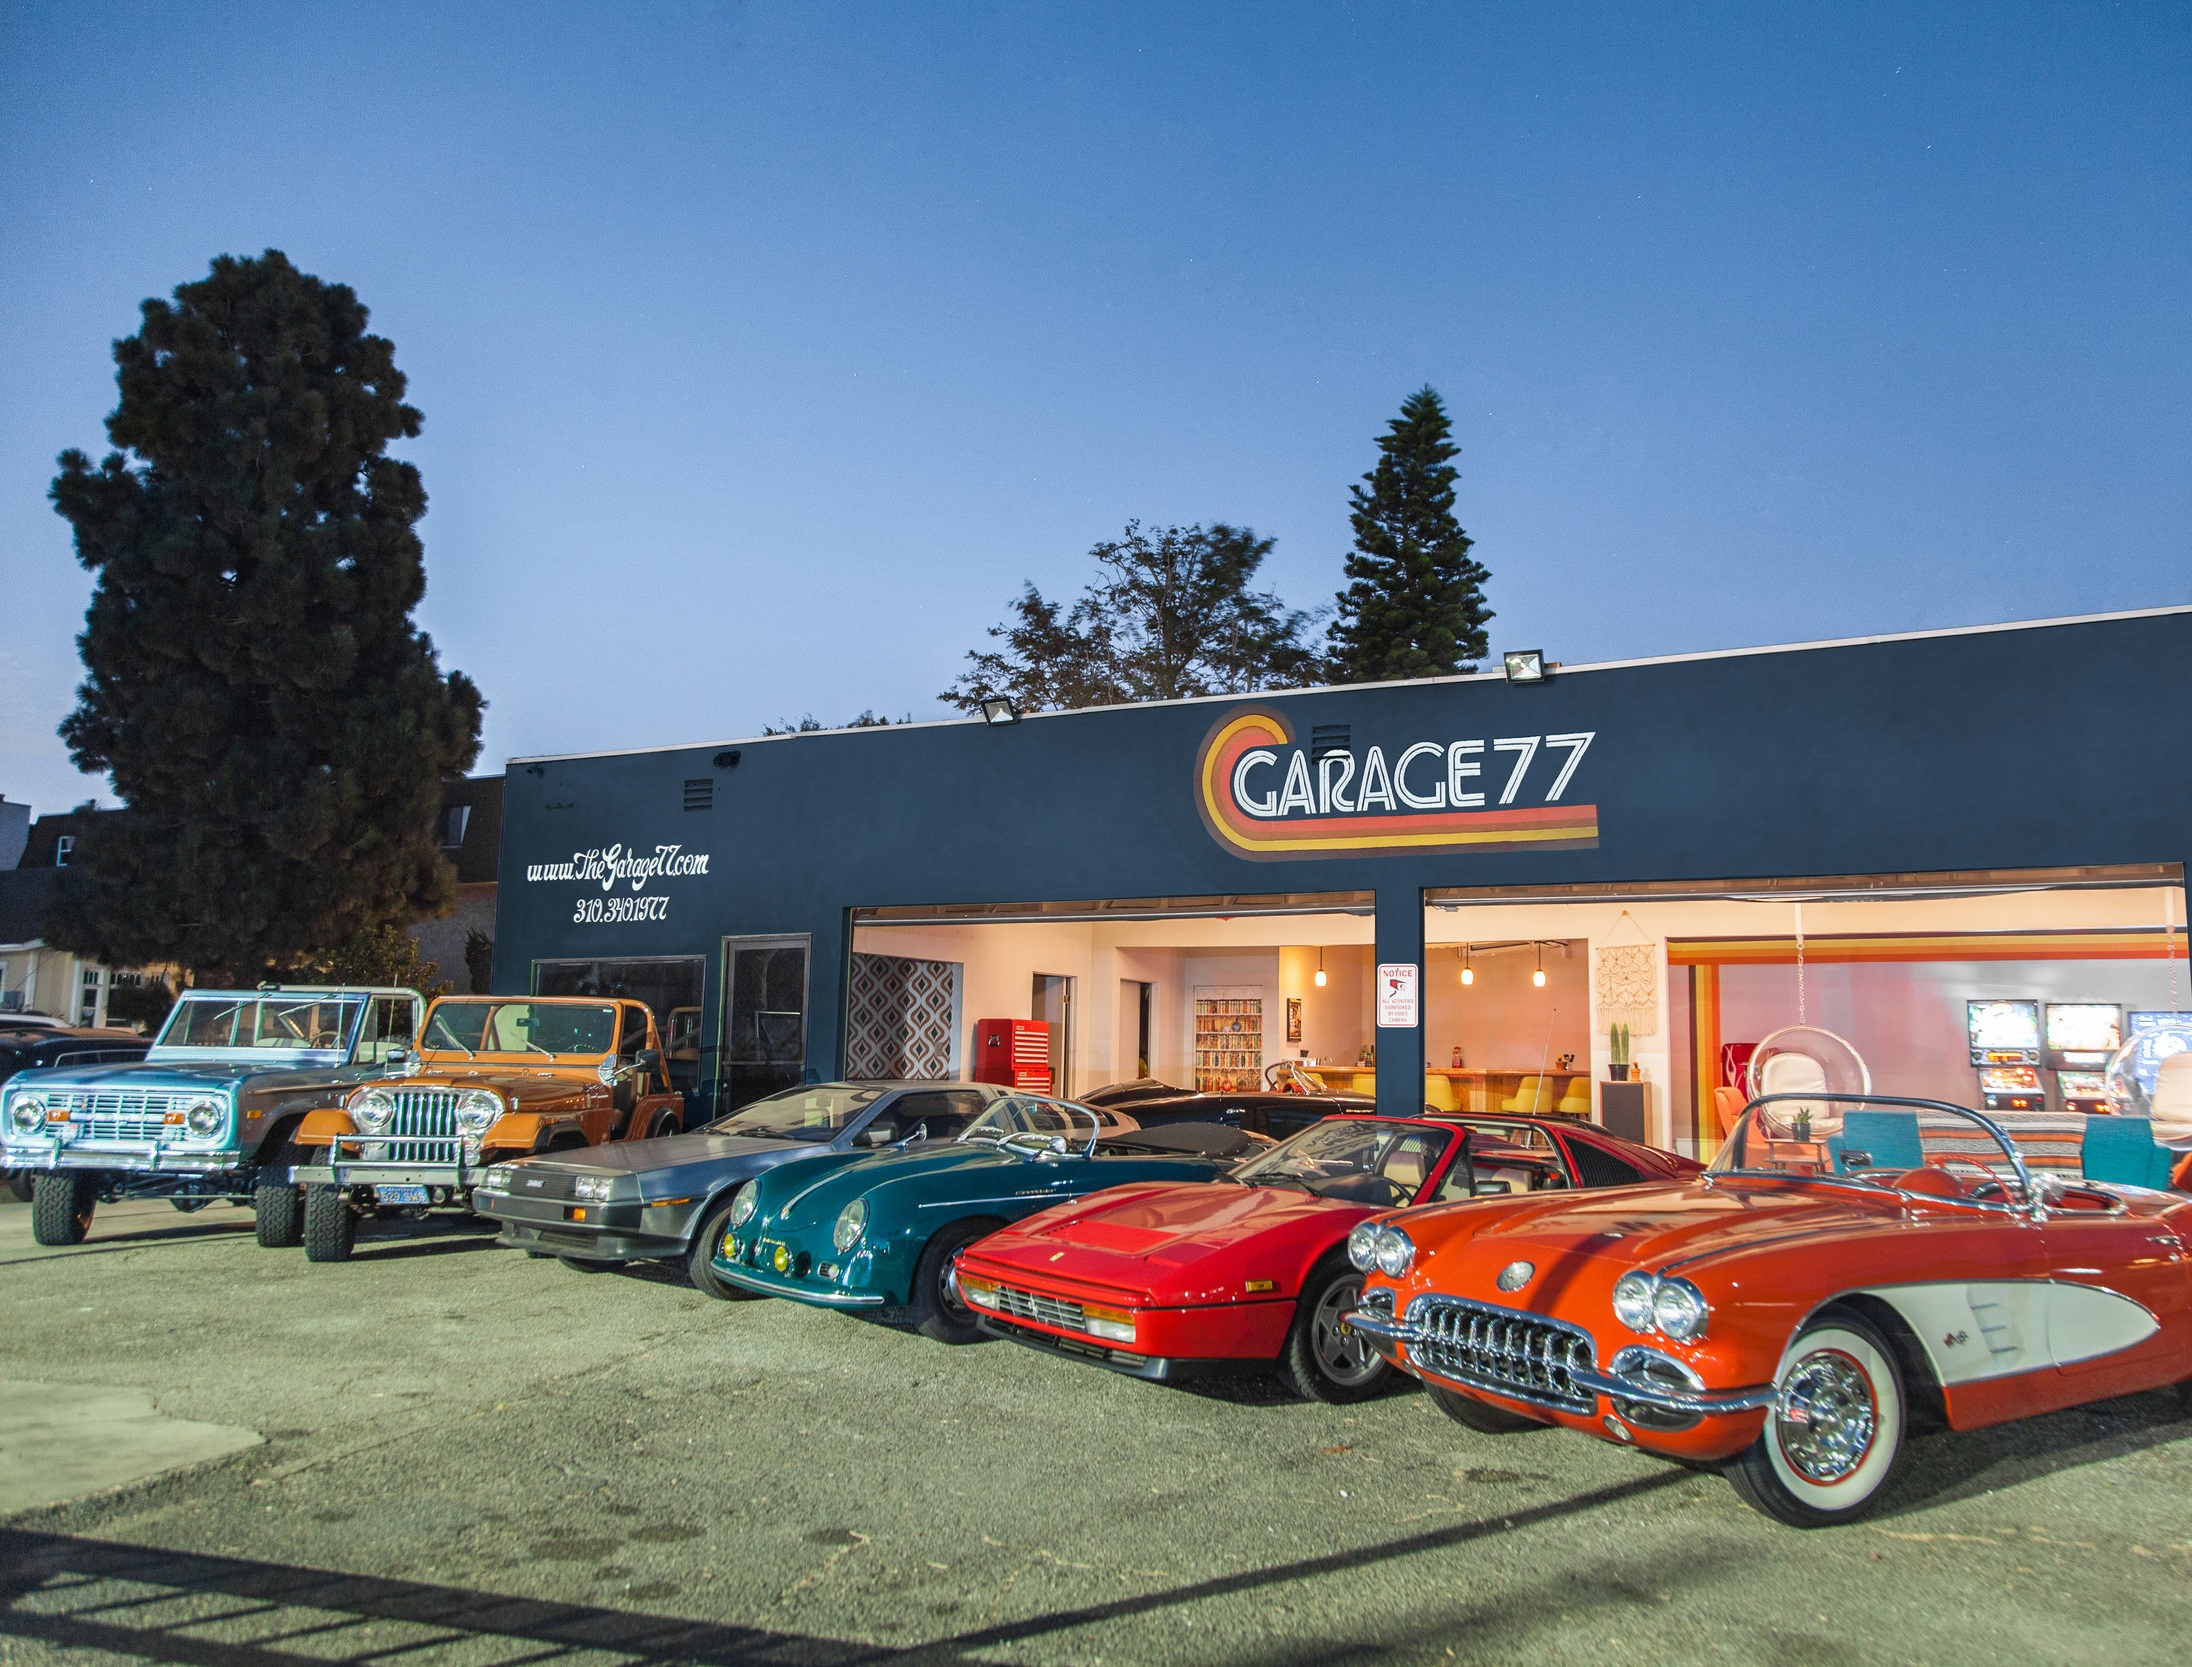 Check Out The Fleet. - Our current line up of cars includes a '59 Corvette C1, '75 Ford Bronco, '87 Ferrari 328 GTS, '56 Porsche 356 Speedster Tribute, '67 Chevy Camaro, '61 Lincoln Continental, and a '77 Jeep CJ-5.